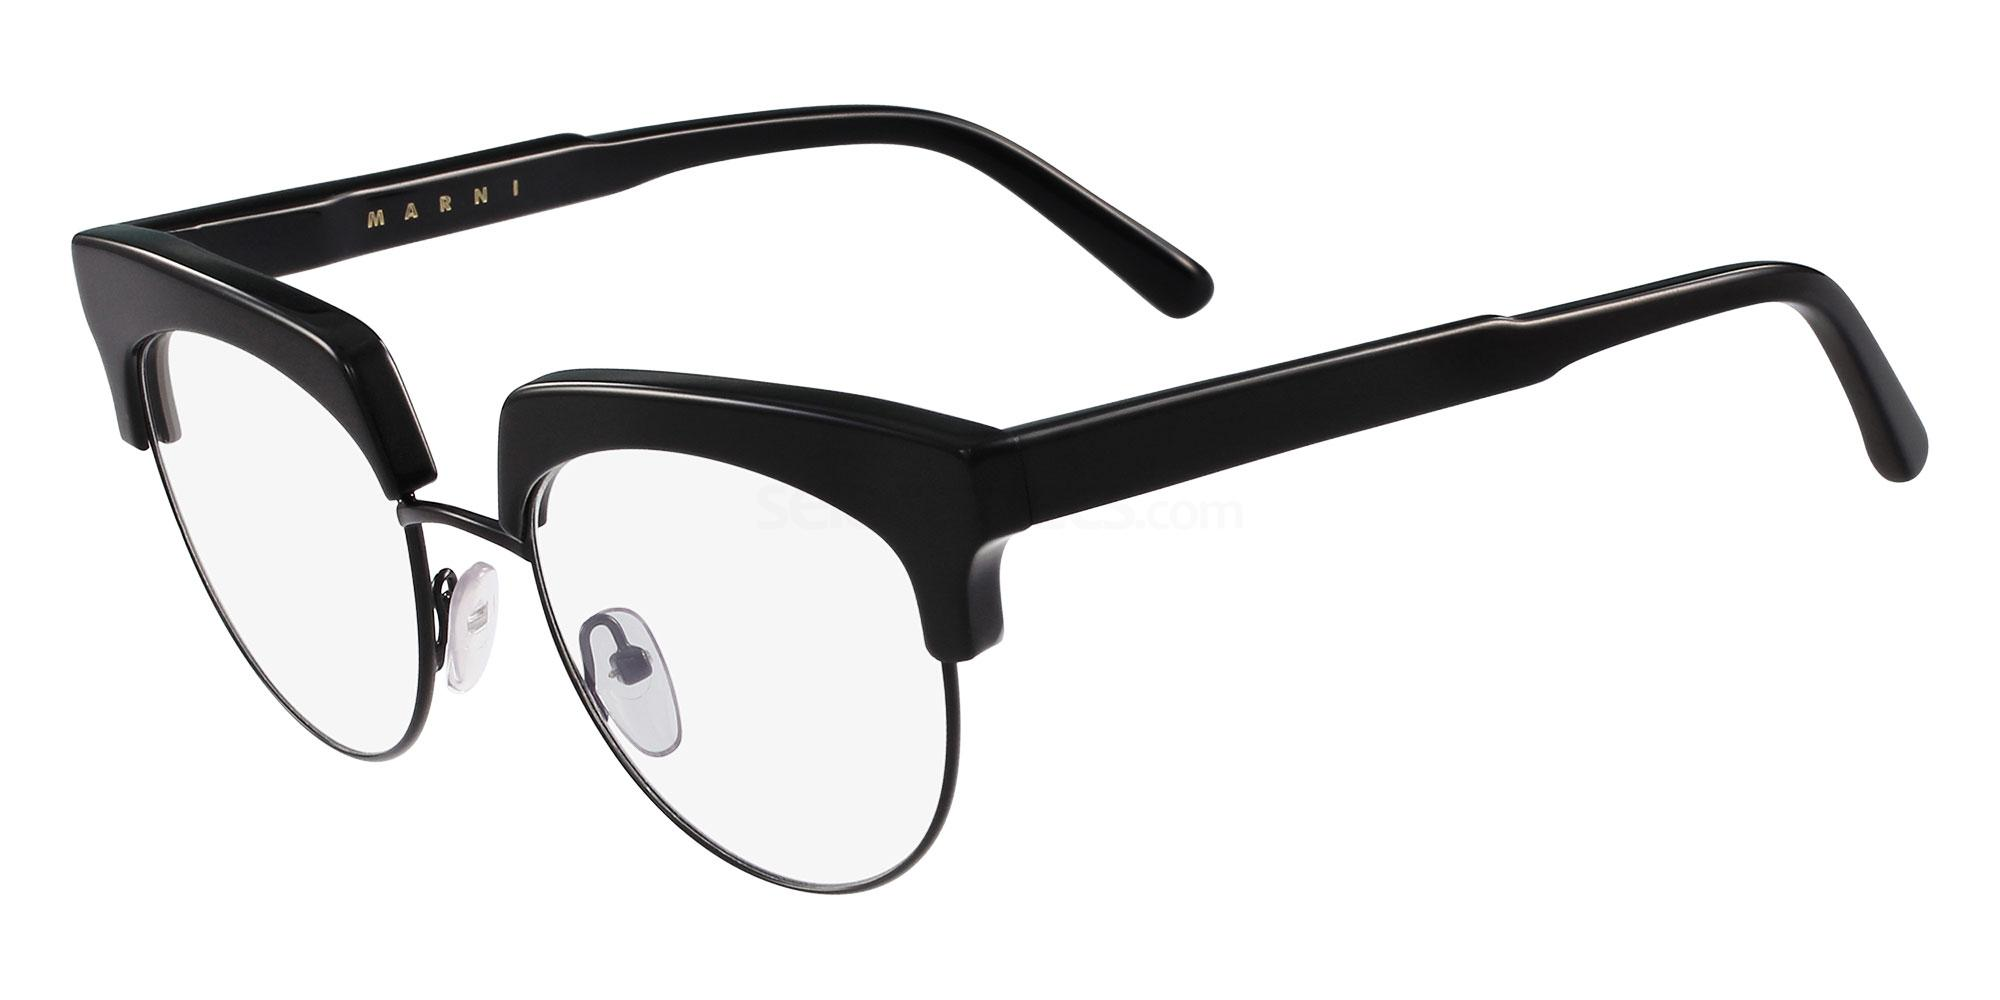 001 ME2605 Glasses, Marni